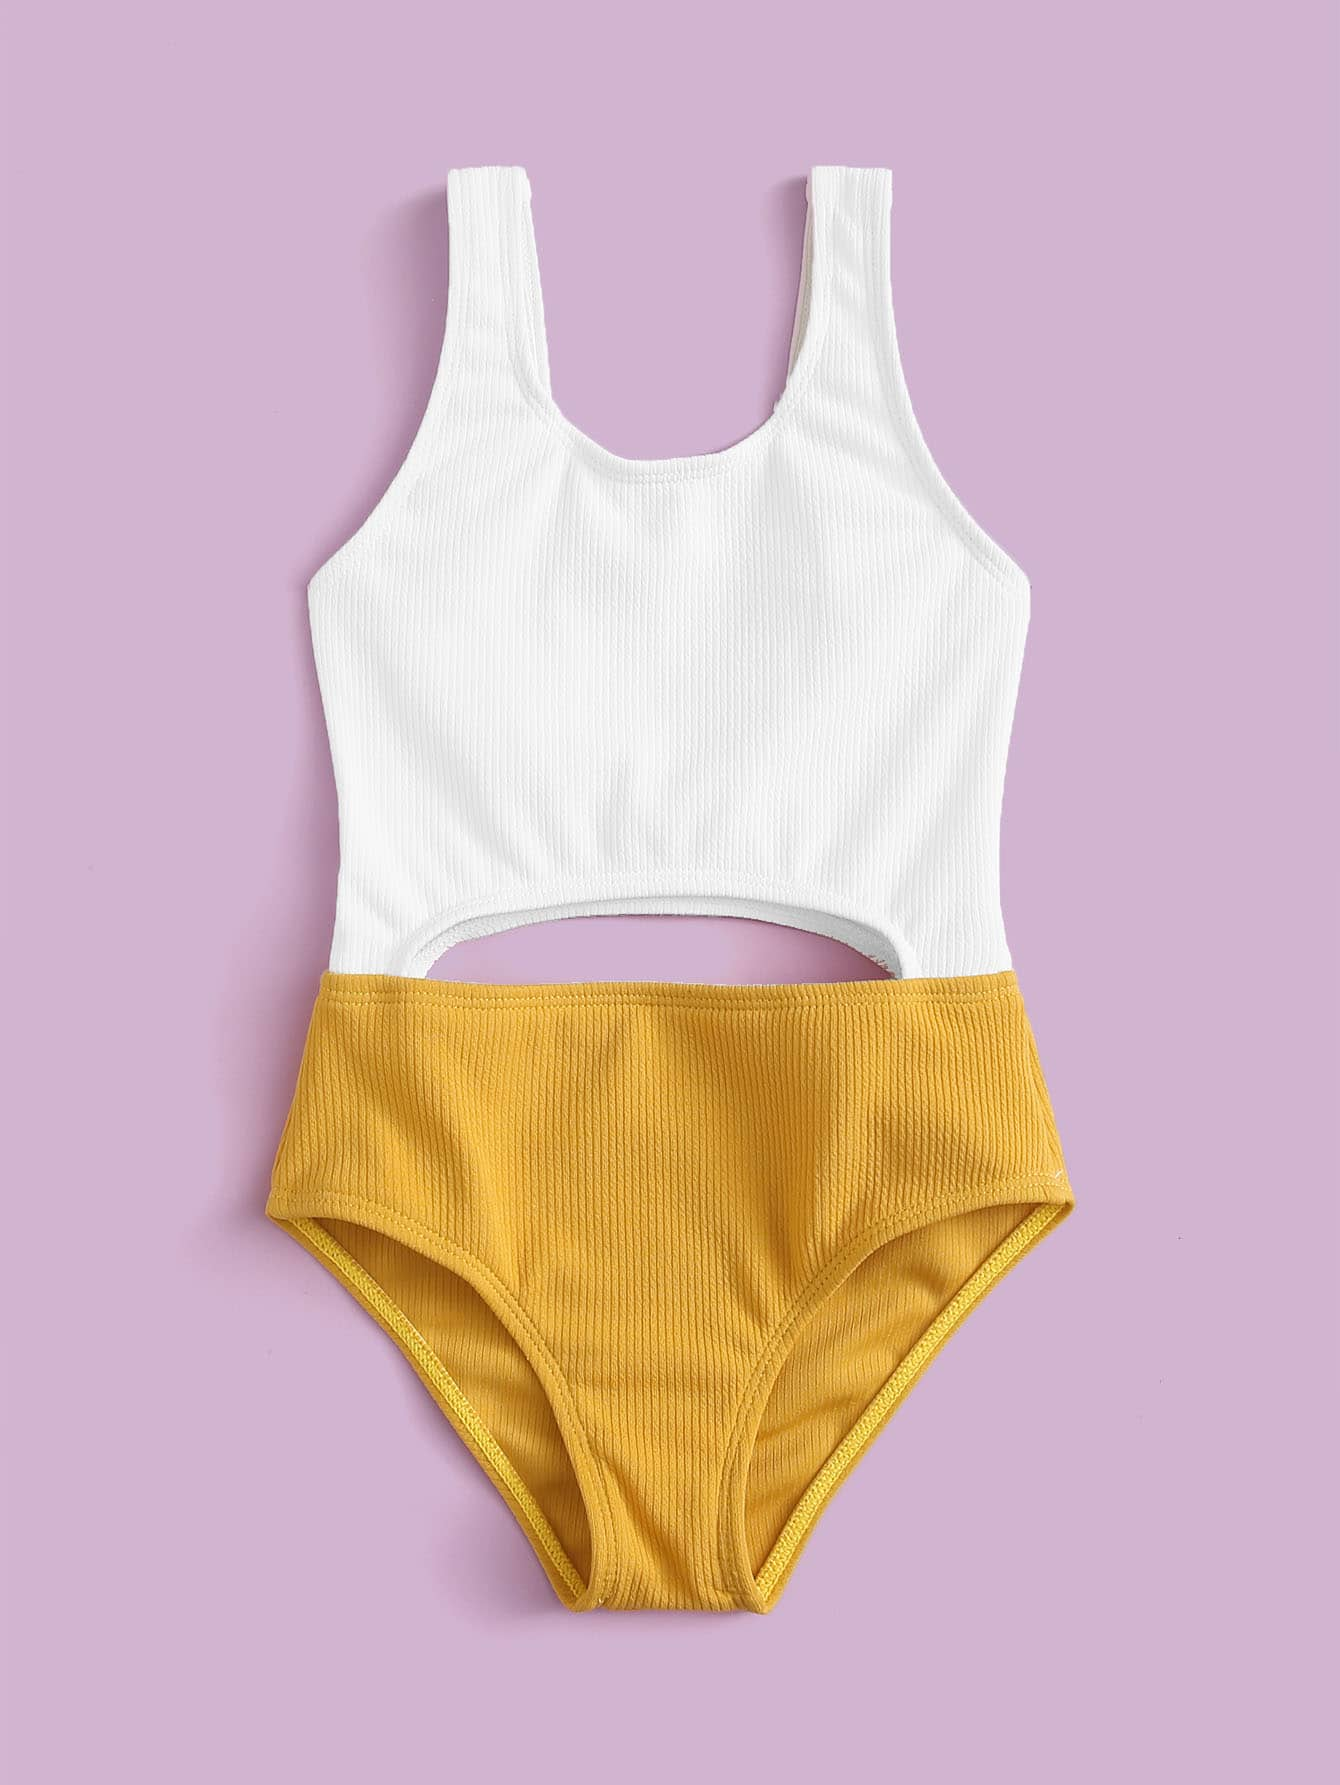 Toddler Girls Rib Two Tone One Piece Swimsuit - FLJ CORPORATIONS